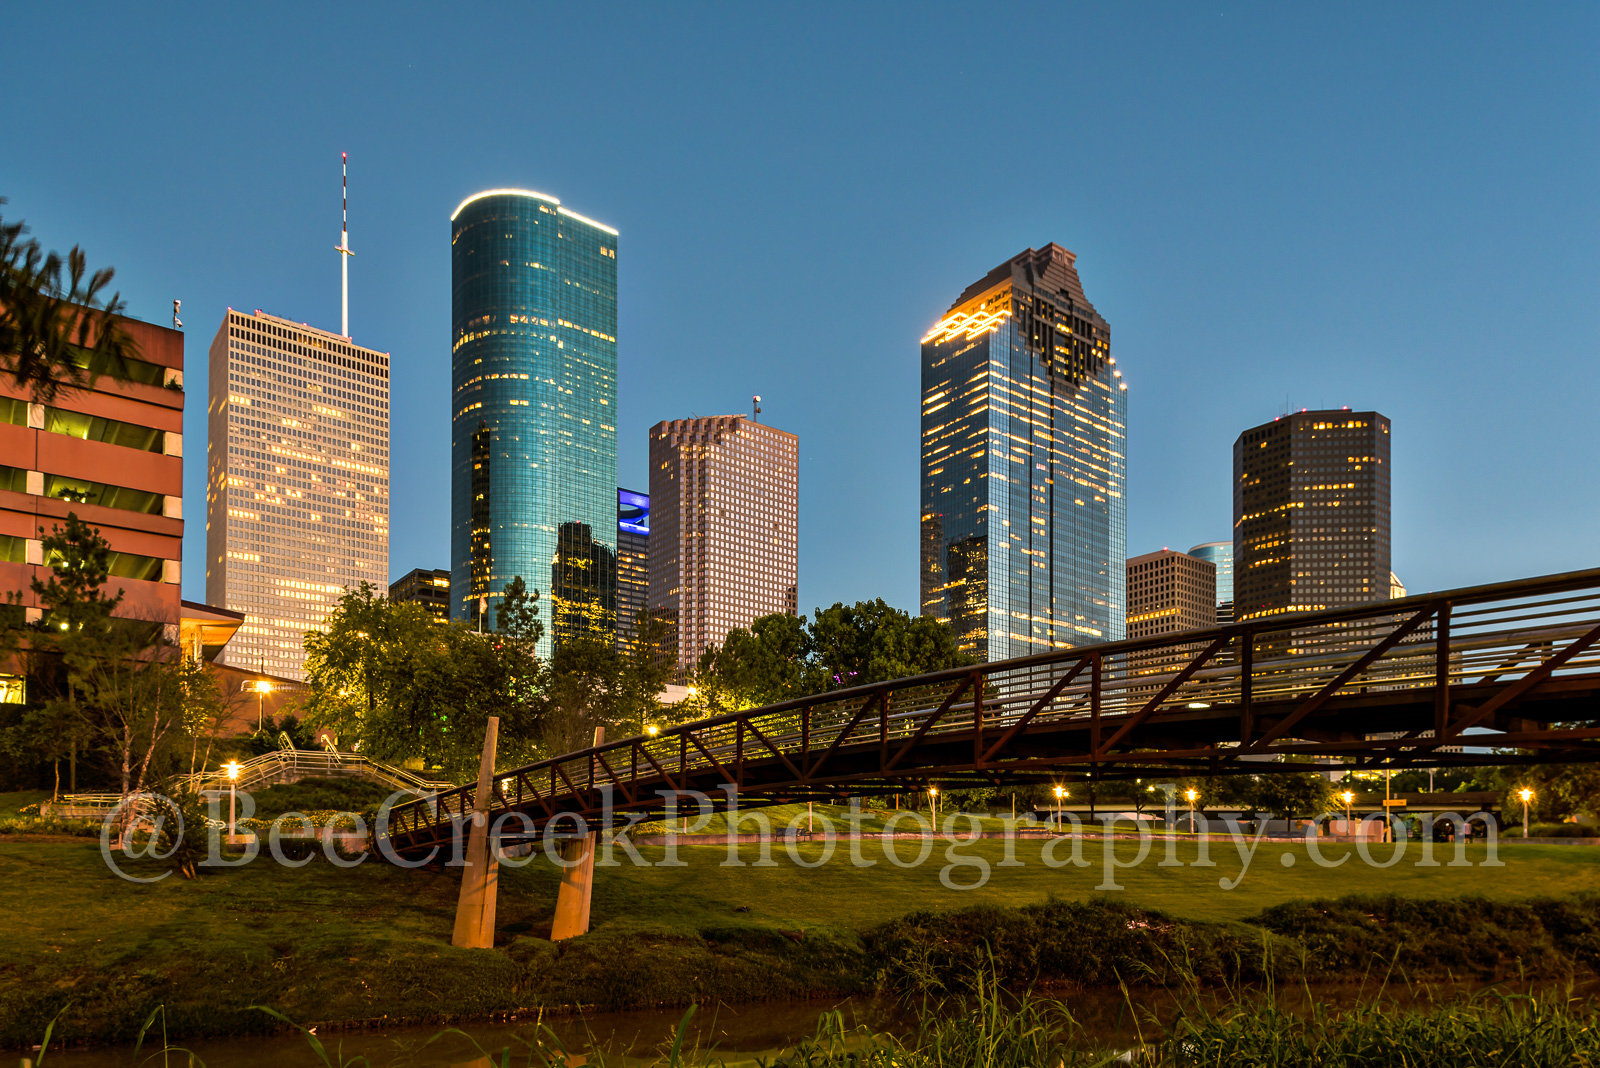 Houston, bagby to sabine, promenade, bridge, downtown, skyline, blue hour, dusk, pedestrian bridges, america, cityscapes, stock bridge photos, stock bridge pictures, images of houston, city, US, stree, photo